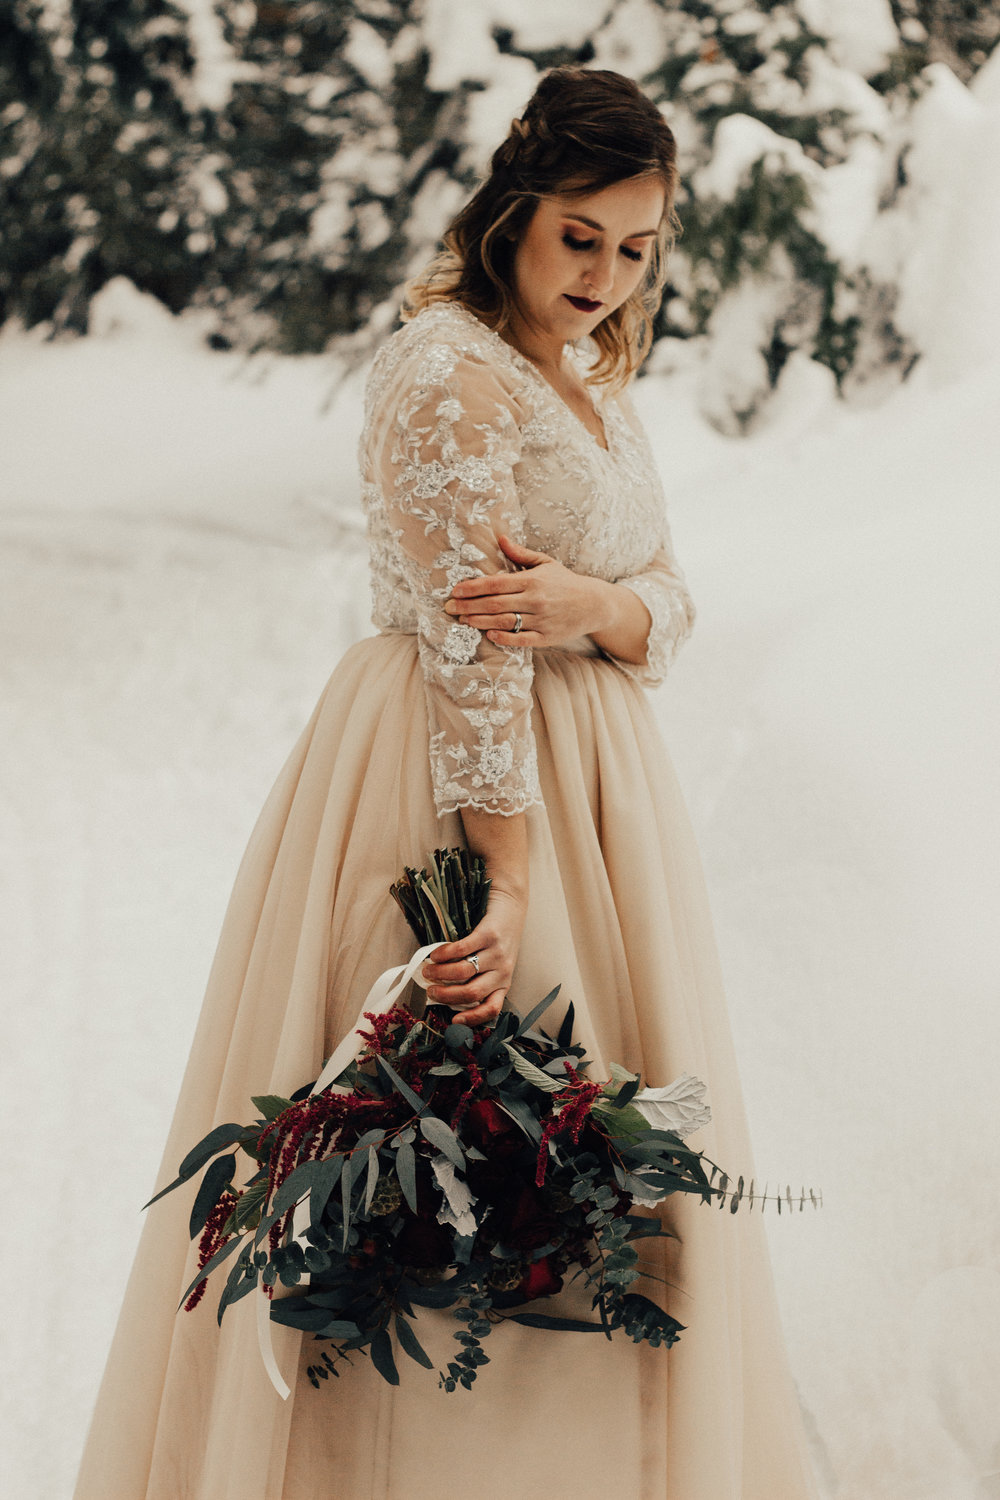 Styled-Winter-Elopement-86.jpg